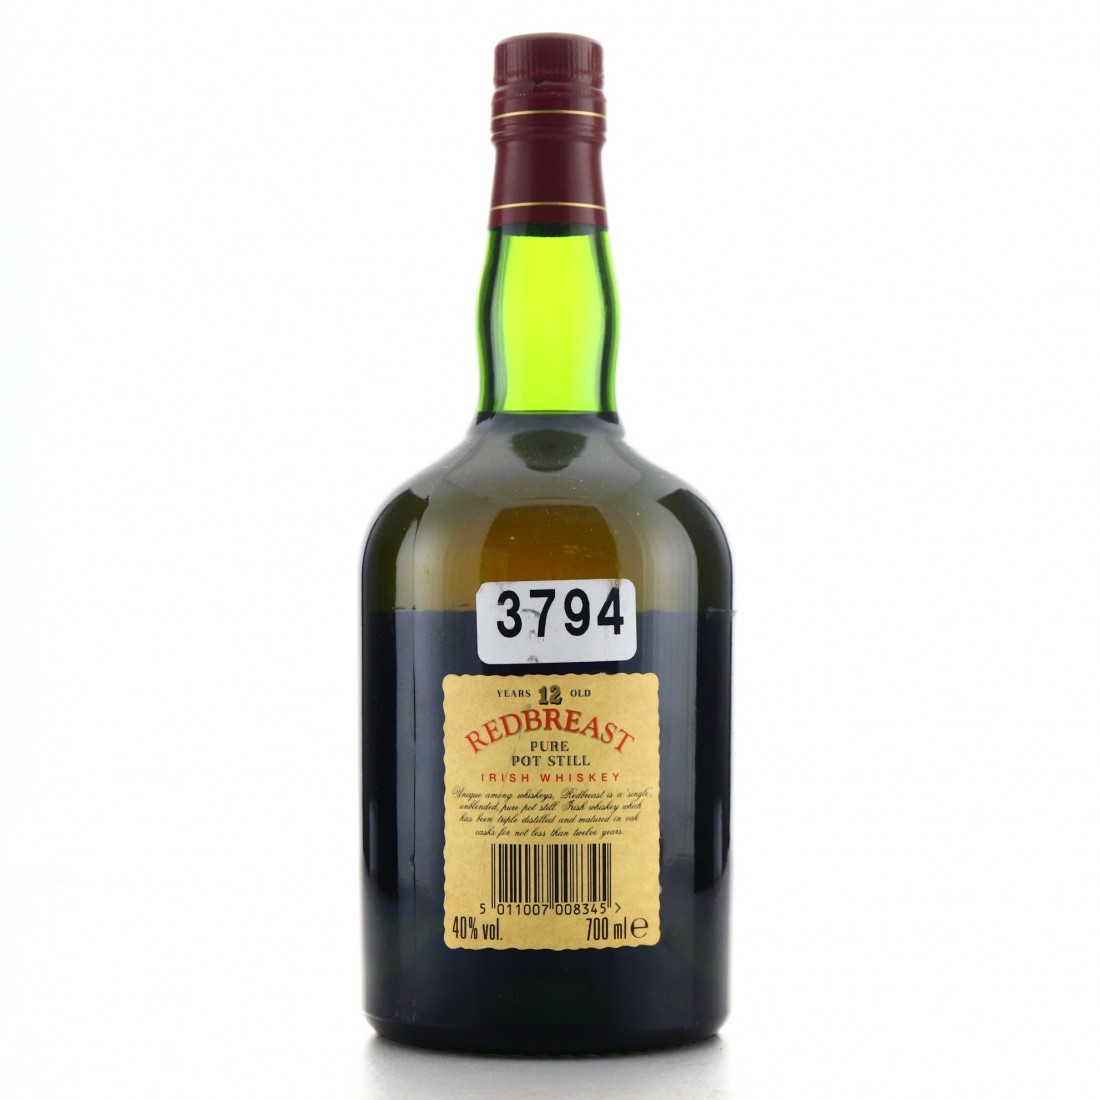 Redbreast 12 Year Old Fitzgerald and Co